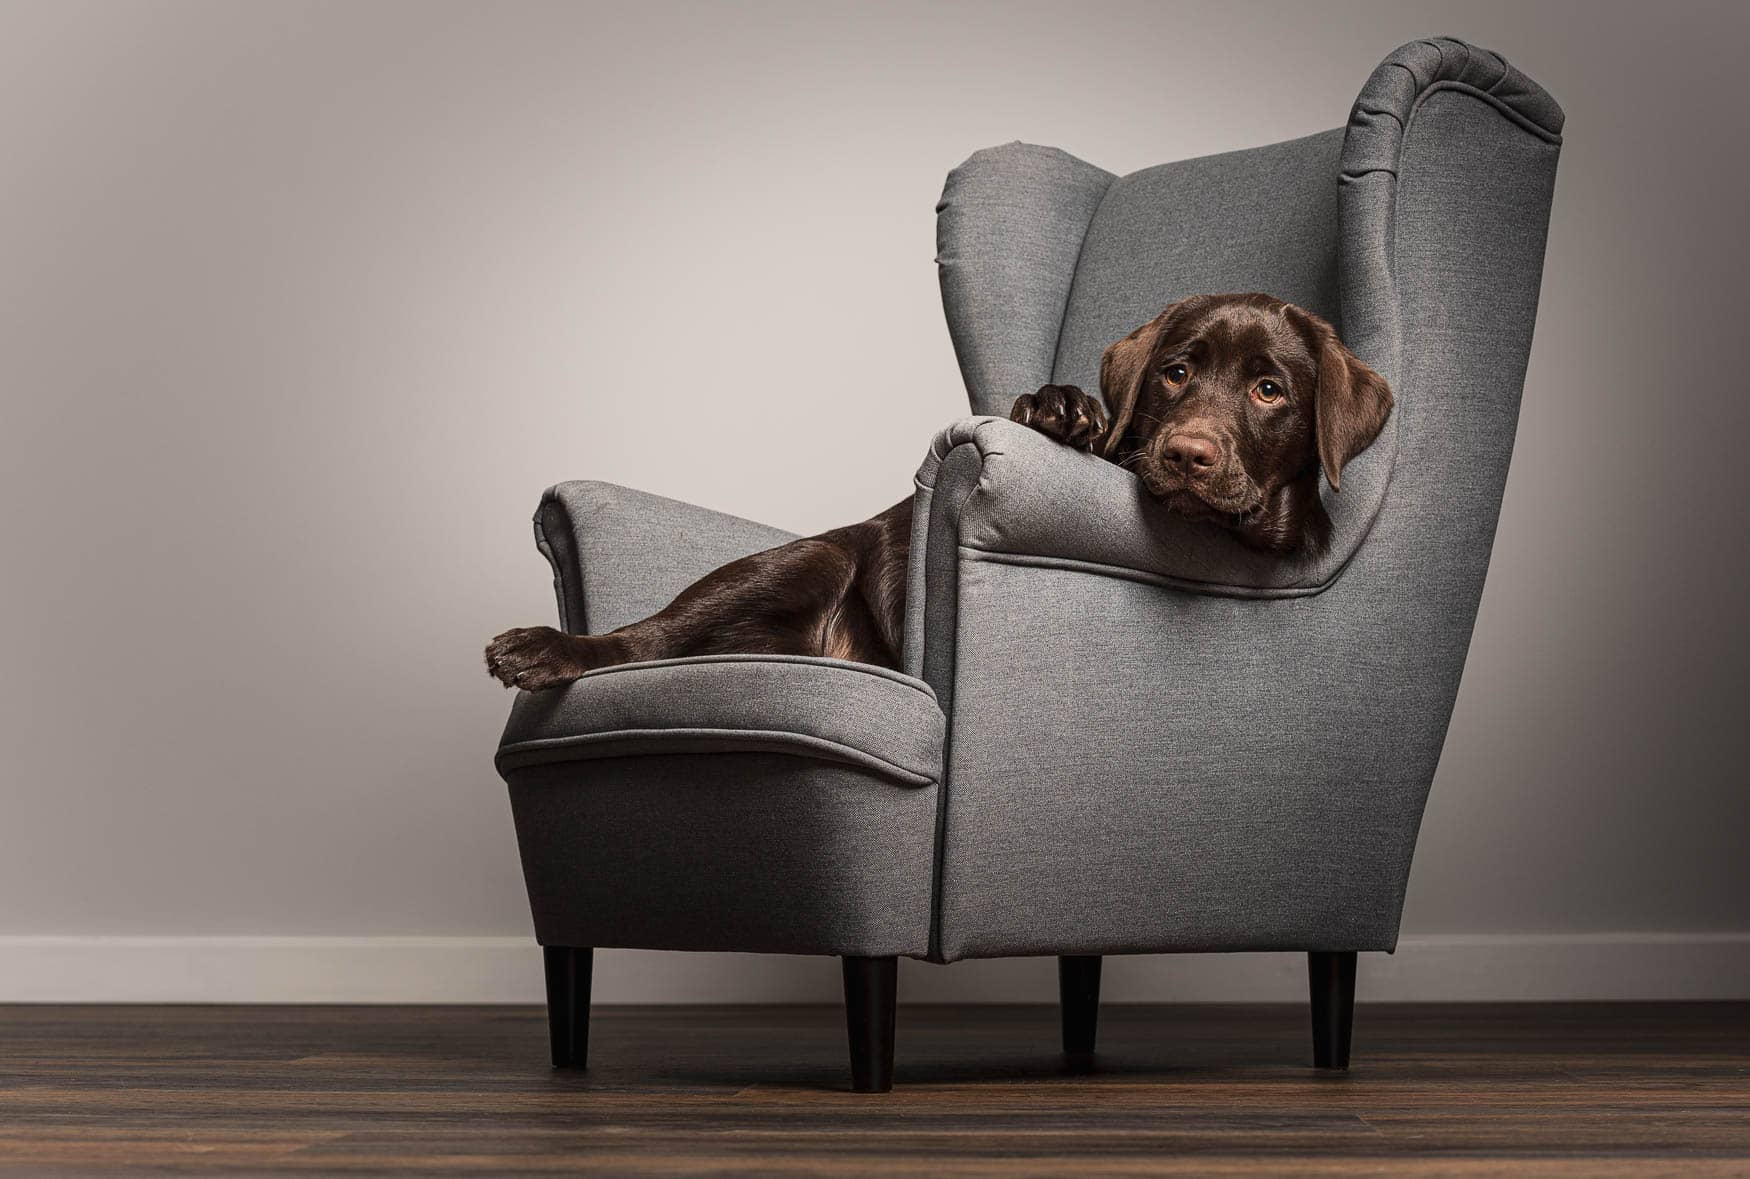 Fine art studio dog photographer Cheshire - Working Chocolate Labrador puppy